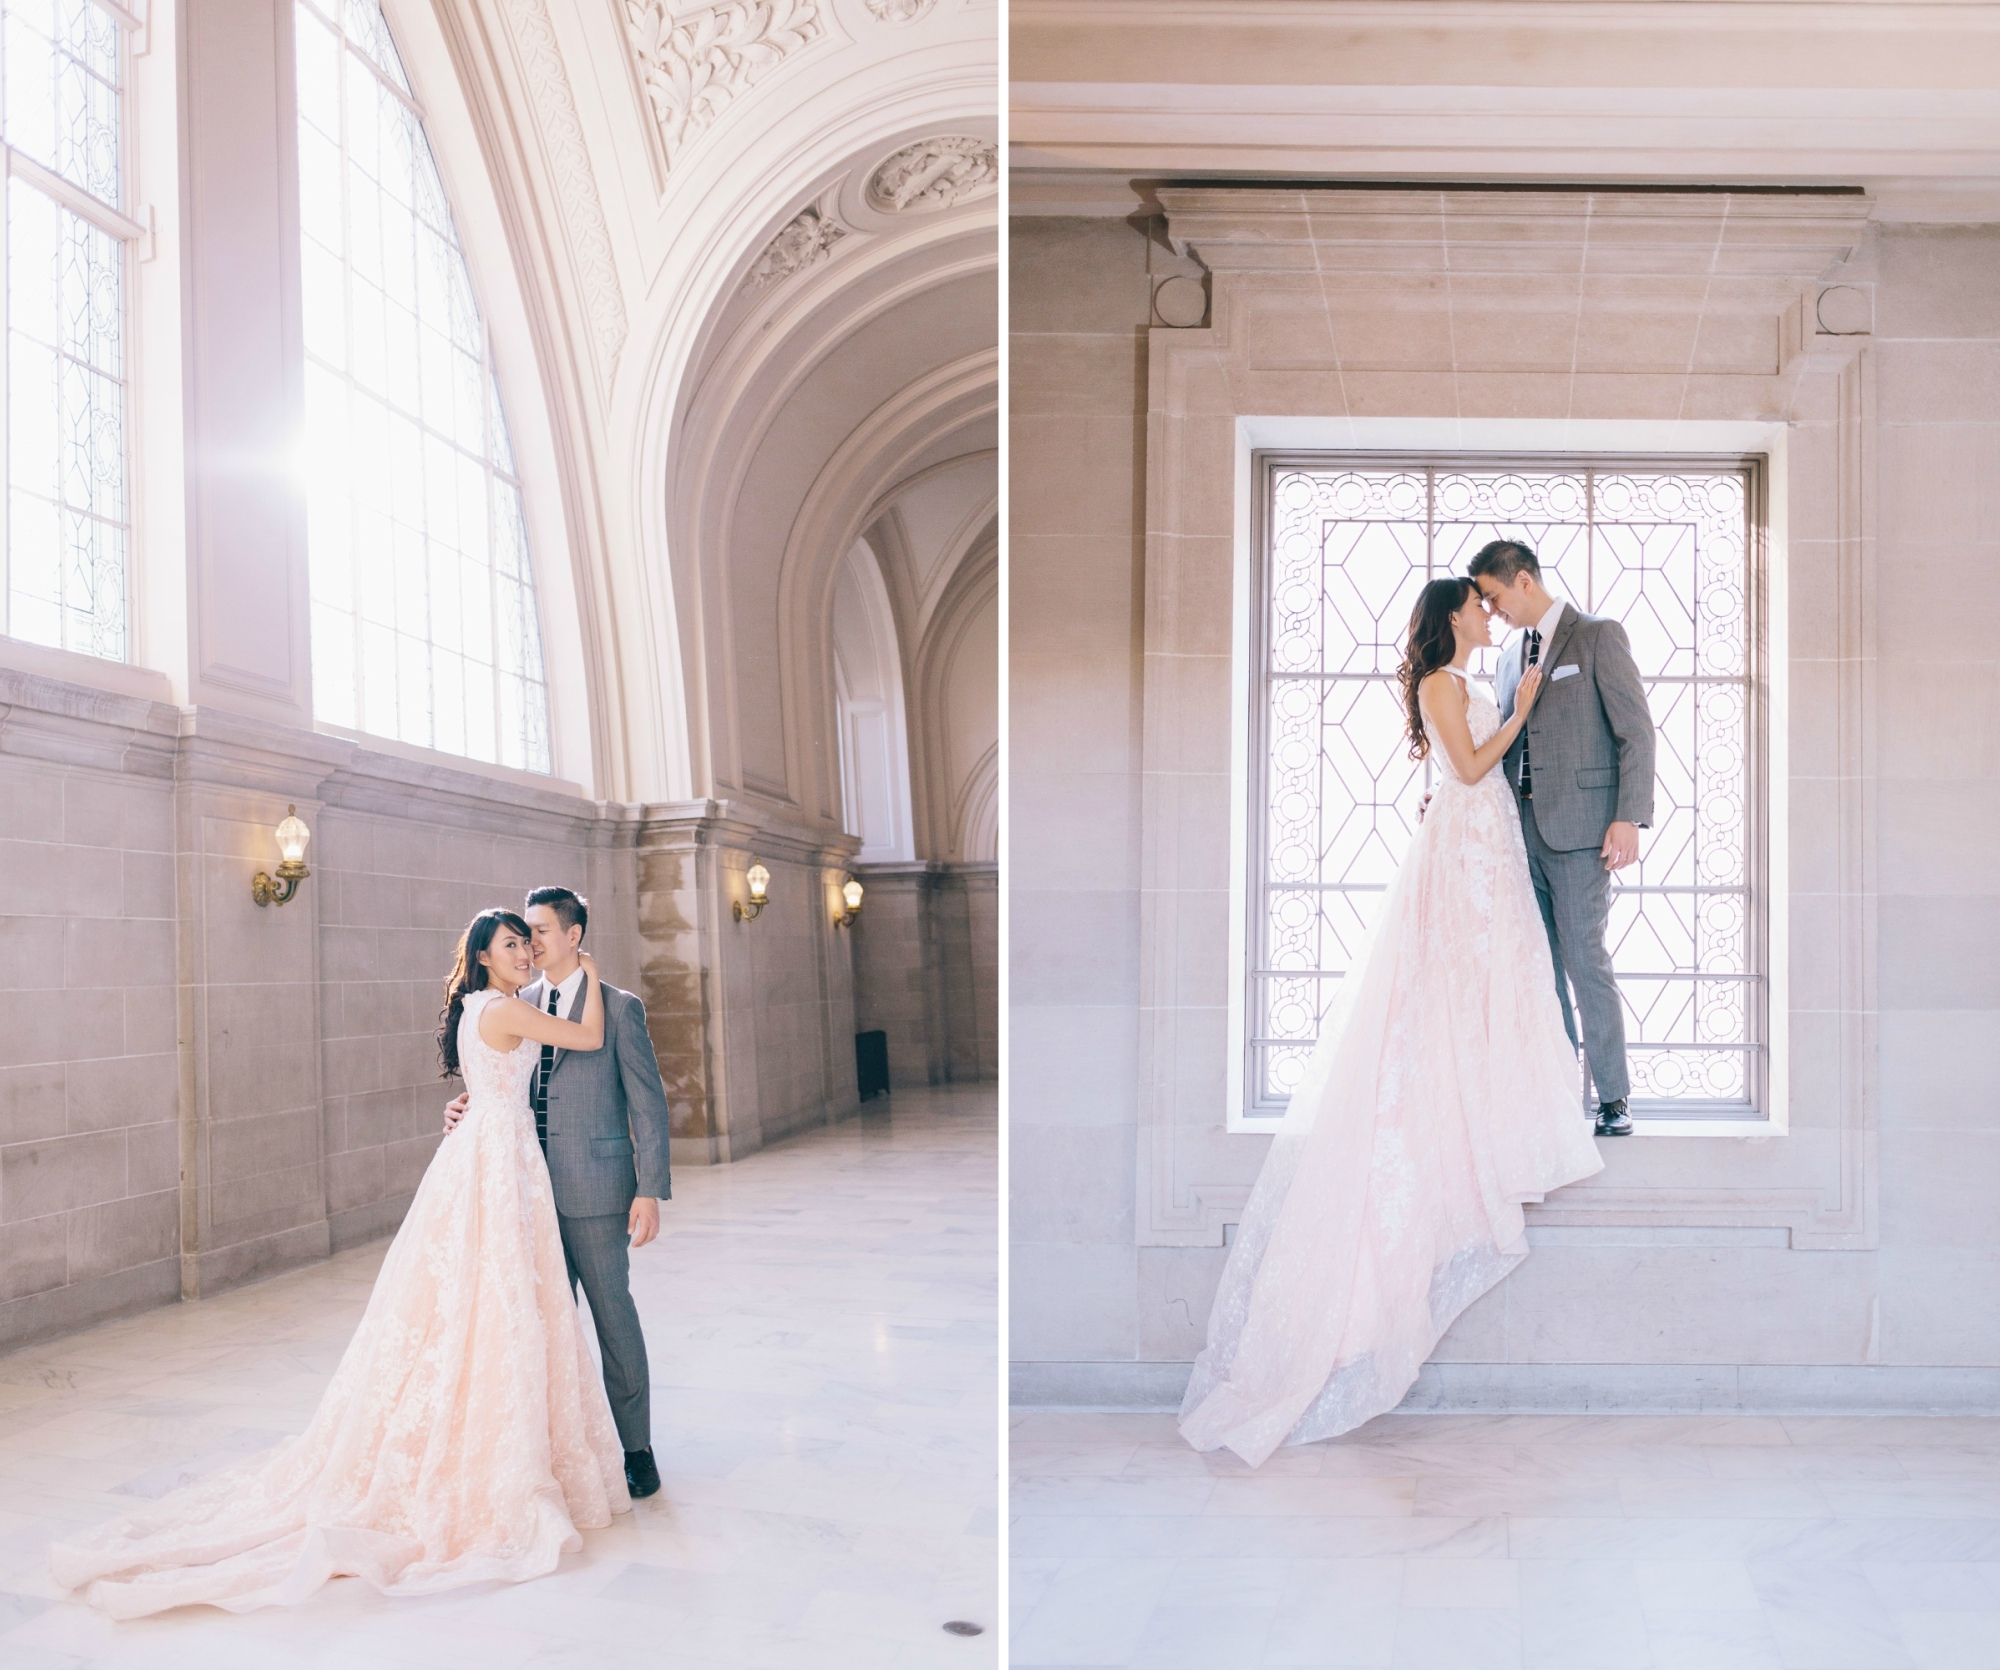 Pre-Wedding Photos in San Francisco by JBJ Pictures Pre-Wedding Photographer, Engagement Session and Wedding Photography in Napa, Sonoma, SF Bay Area (21).jpg